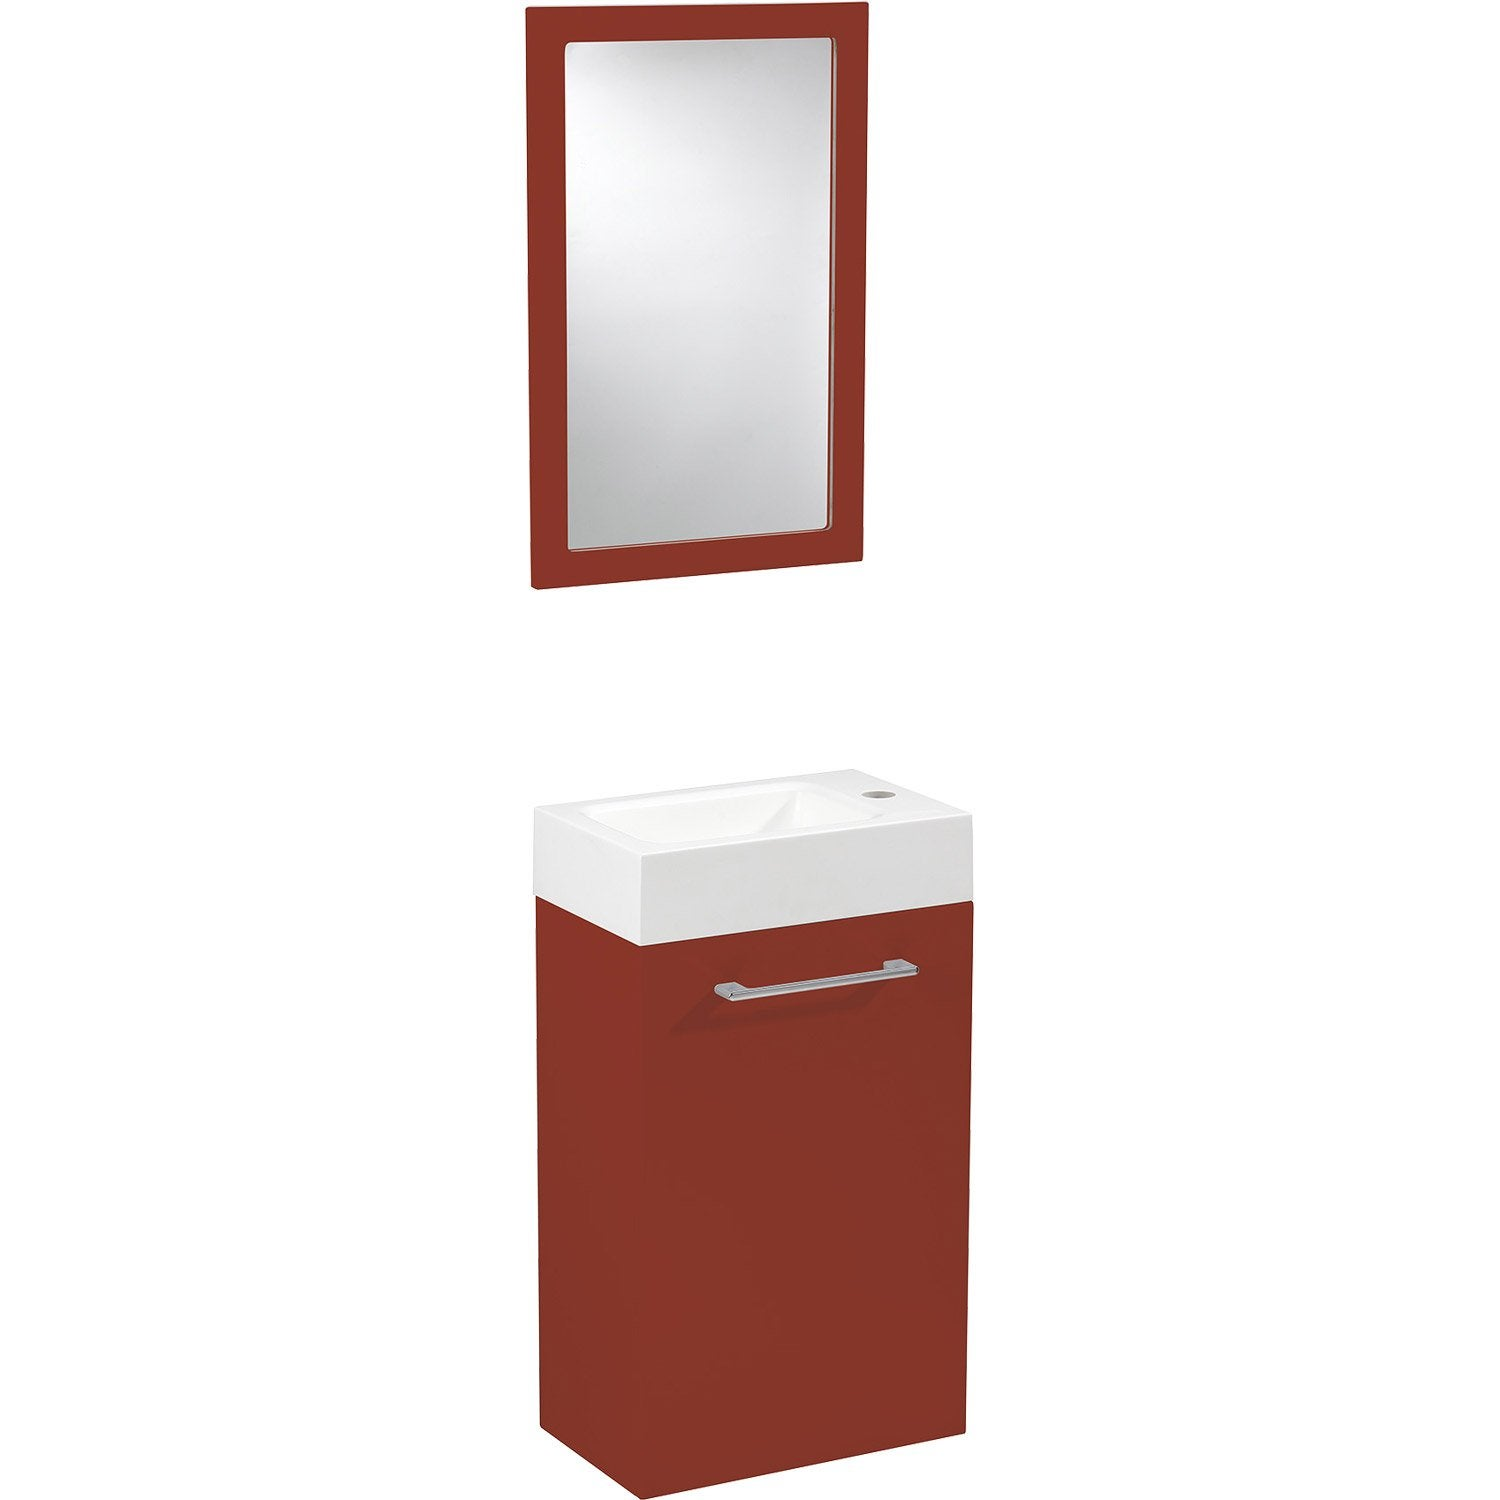 Meuble lave mains avec miroir sensea remix rouge rouge n for Meuble lave mains ikea